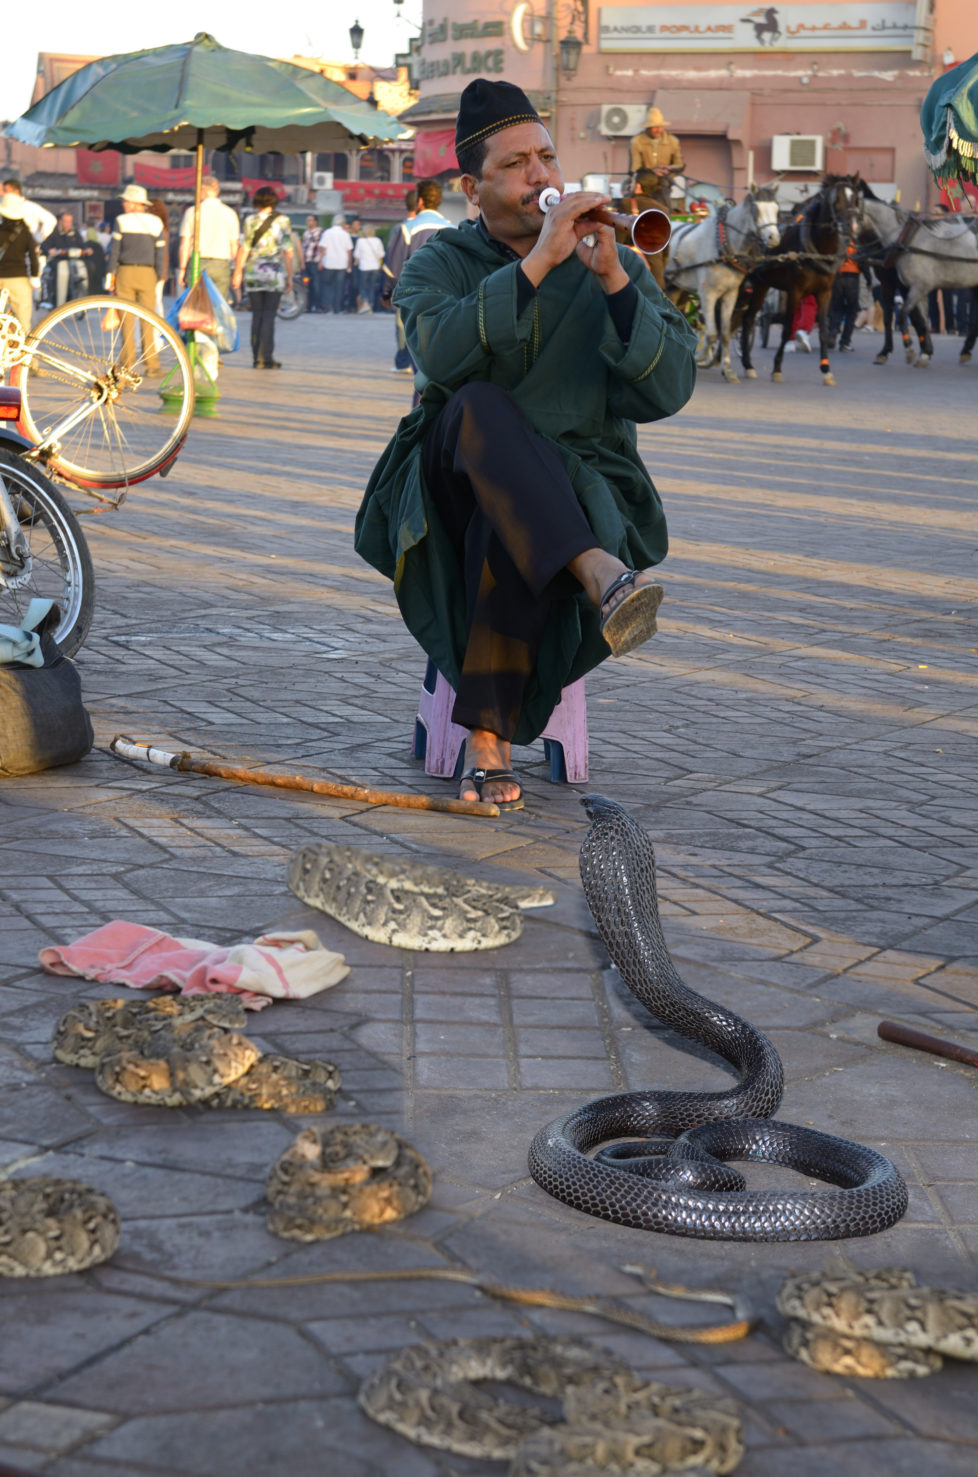 Coiled black cobra and other snakes being charmed by a flute in Place Djemaa el Fna Marrakech. (Photo by: Education Images/UIG via Getty Images)